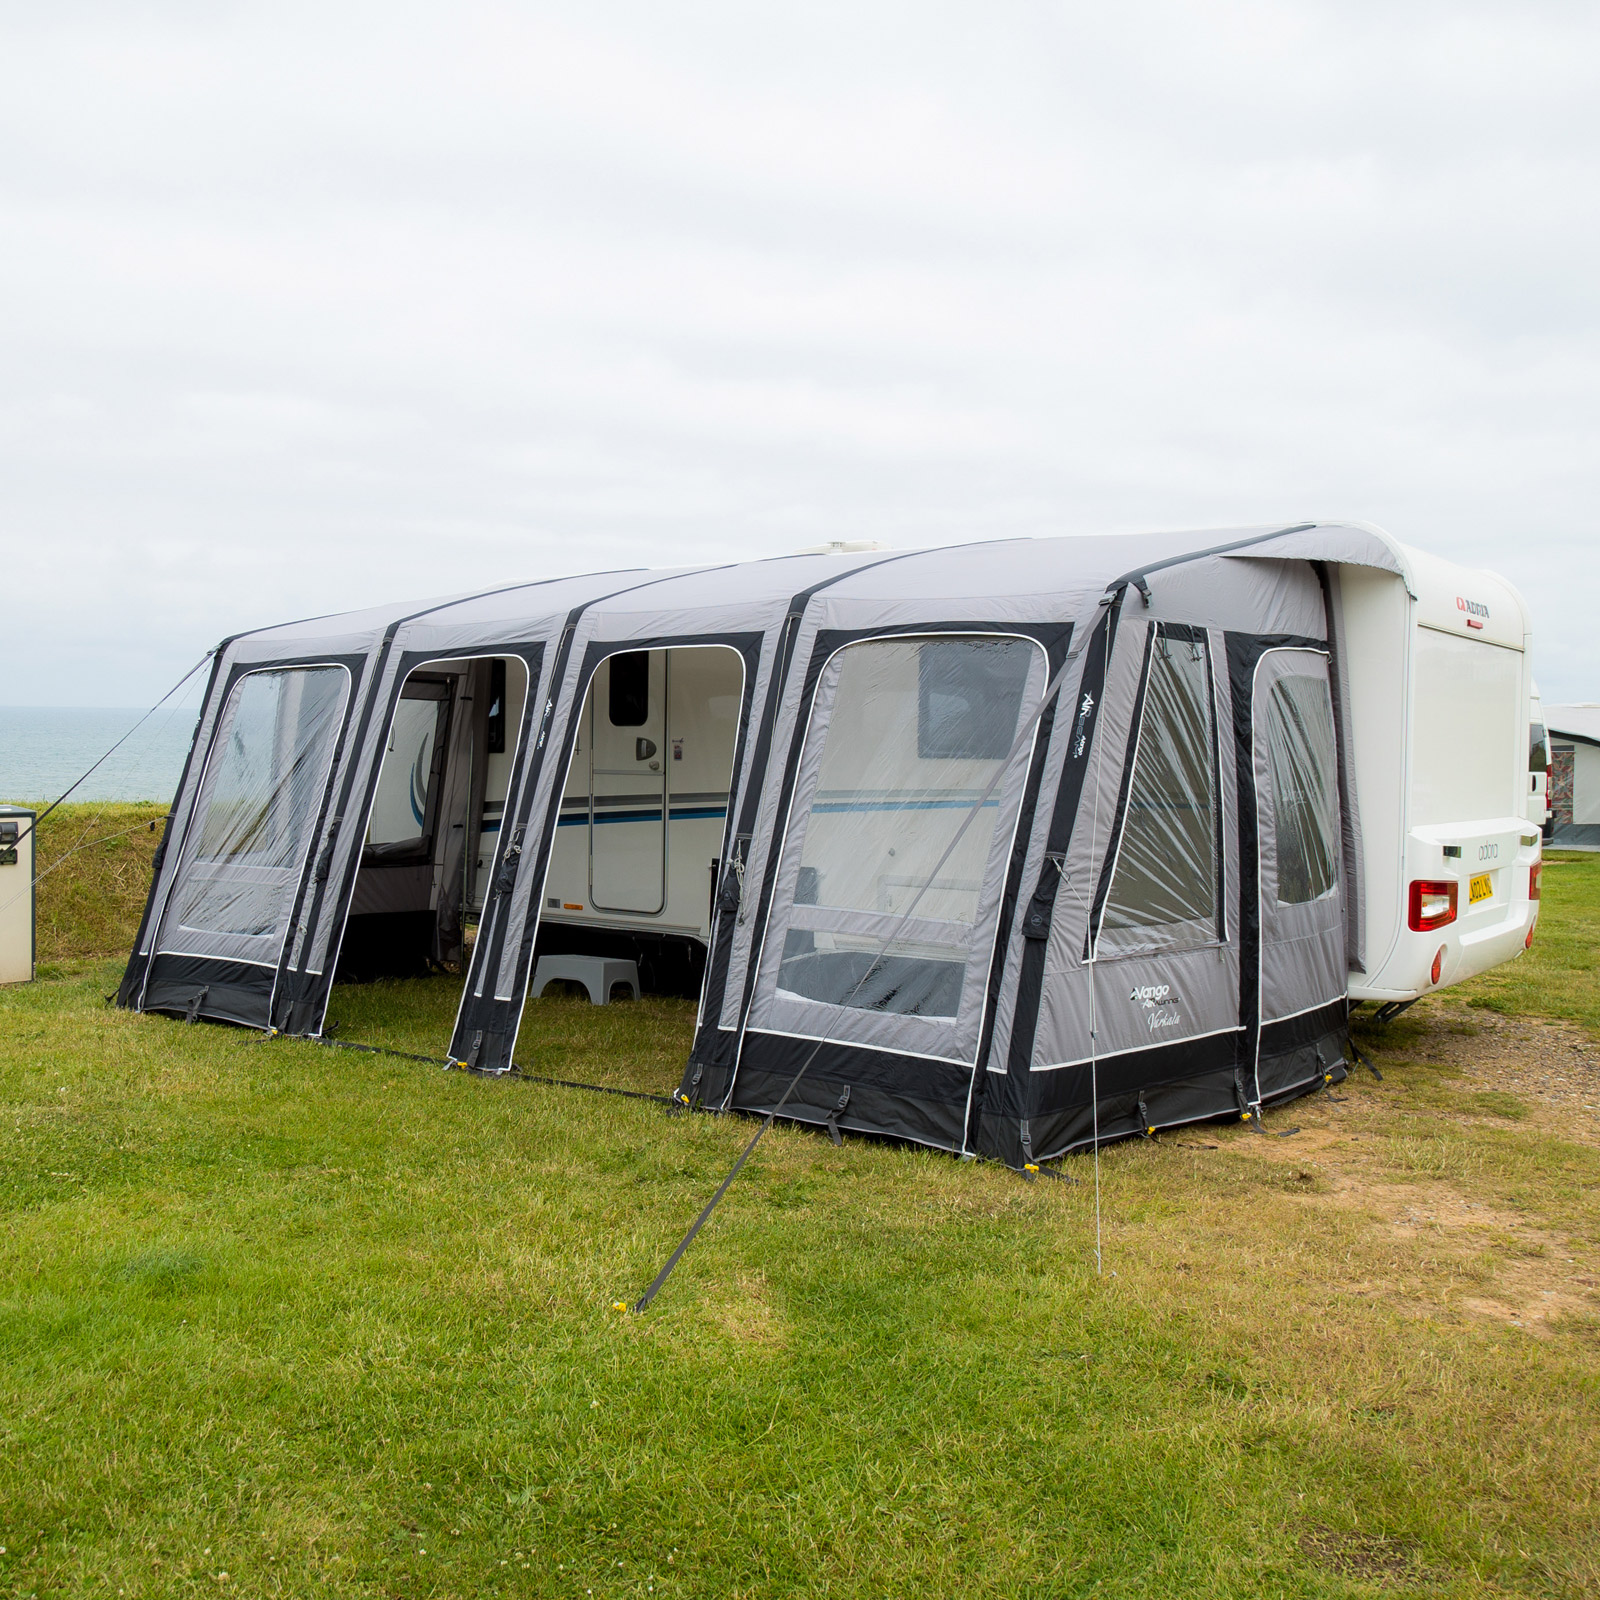 vorzelt vango air awning varkala ii 520 wohnwagen caravan anbau wohnwagen zelt ebay. Black Bedroom Furniture Sets. Home Design Ideas